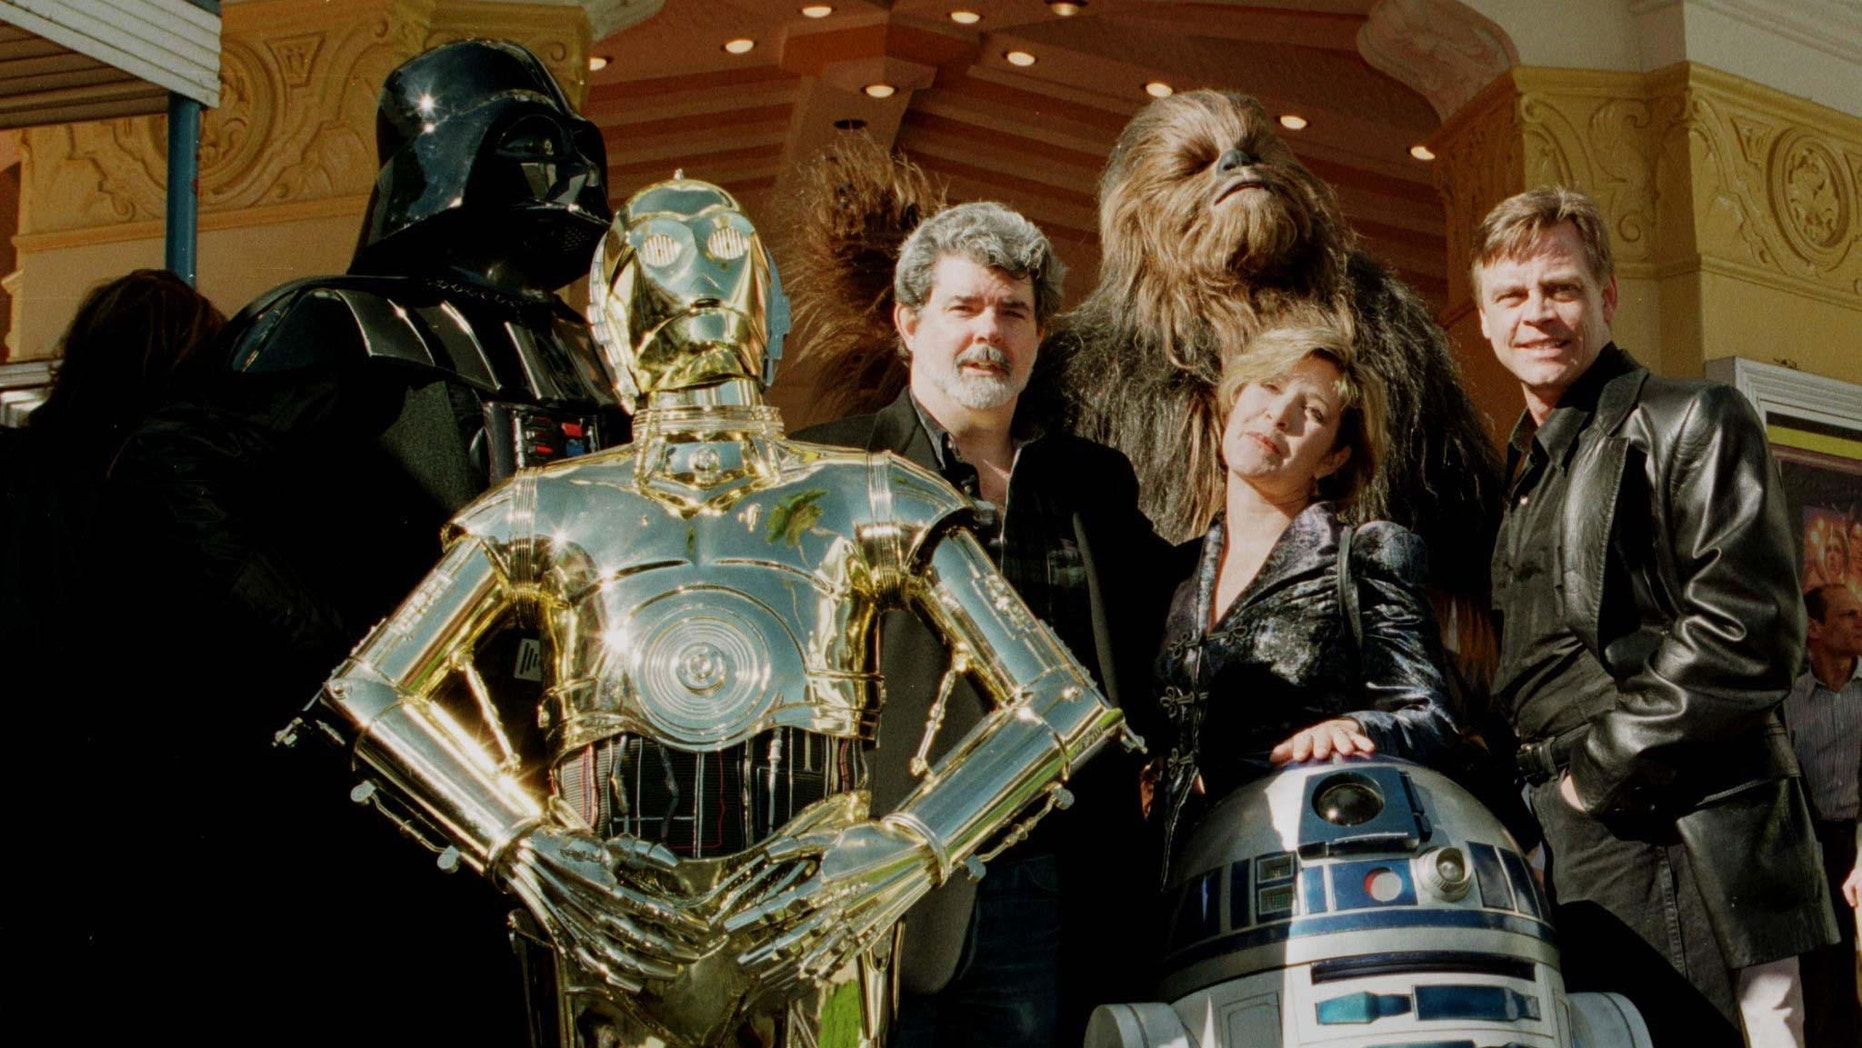 """Director and writer of """"Star Wars,"""" George Lucas (C) poses with cast members Carrie Fisher and Mark Hamill along with characters """"Darth Vader"""" (L) """"3CPO"""" (in gold) """"R2D2"""" (short robot) and """"Chewbacca"""" (background) during the premiere of """"Star Wars Special Editon"""" January 18, 1997 in Los Angeles."""